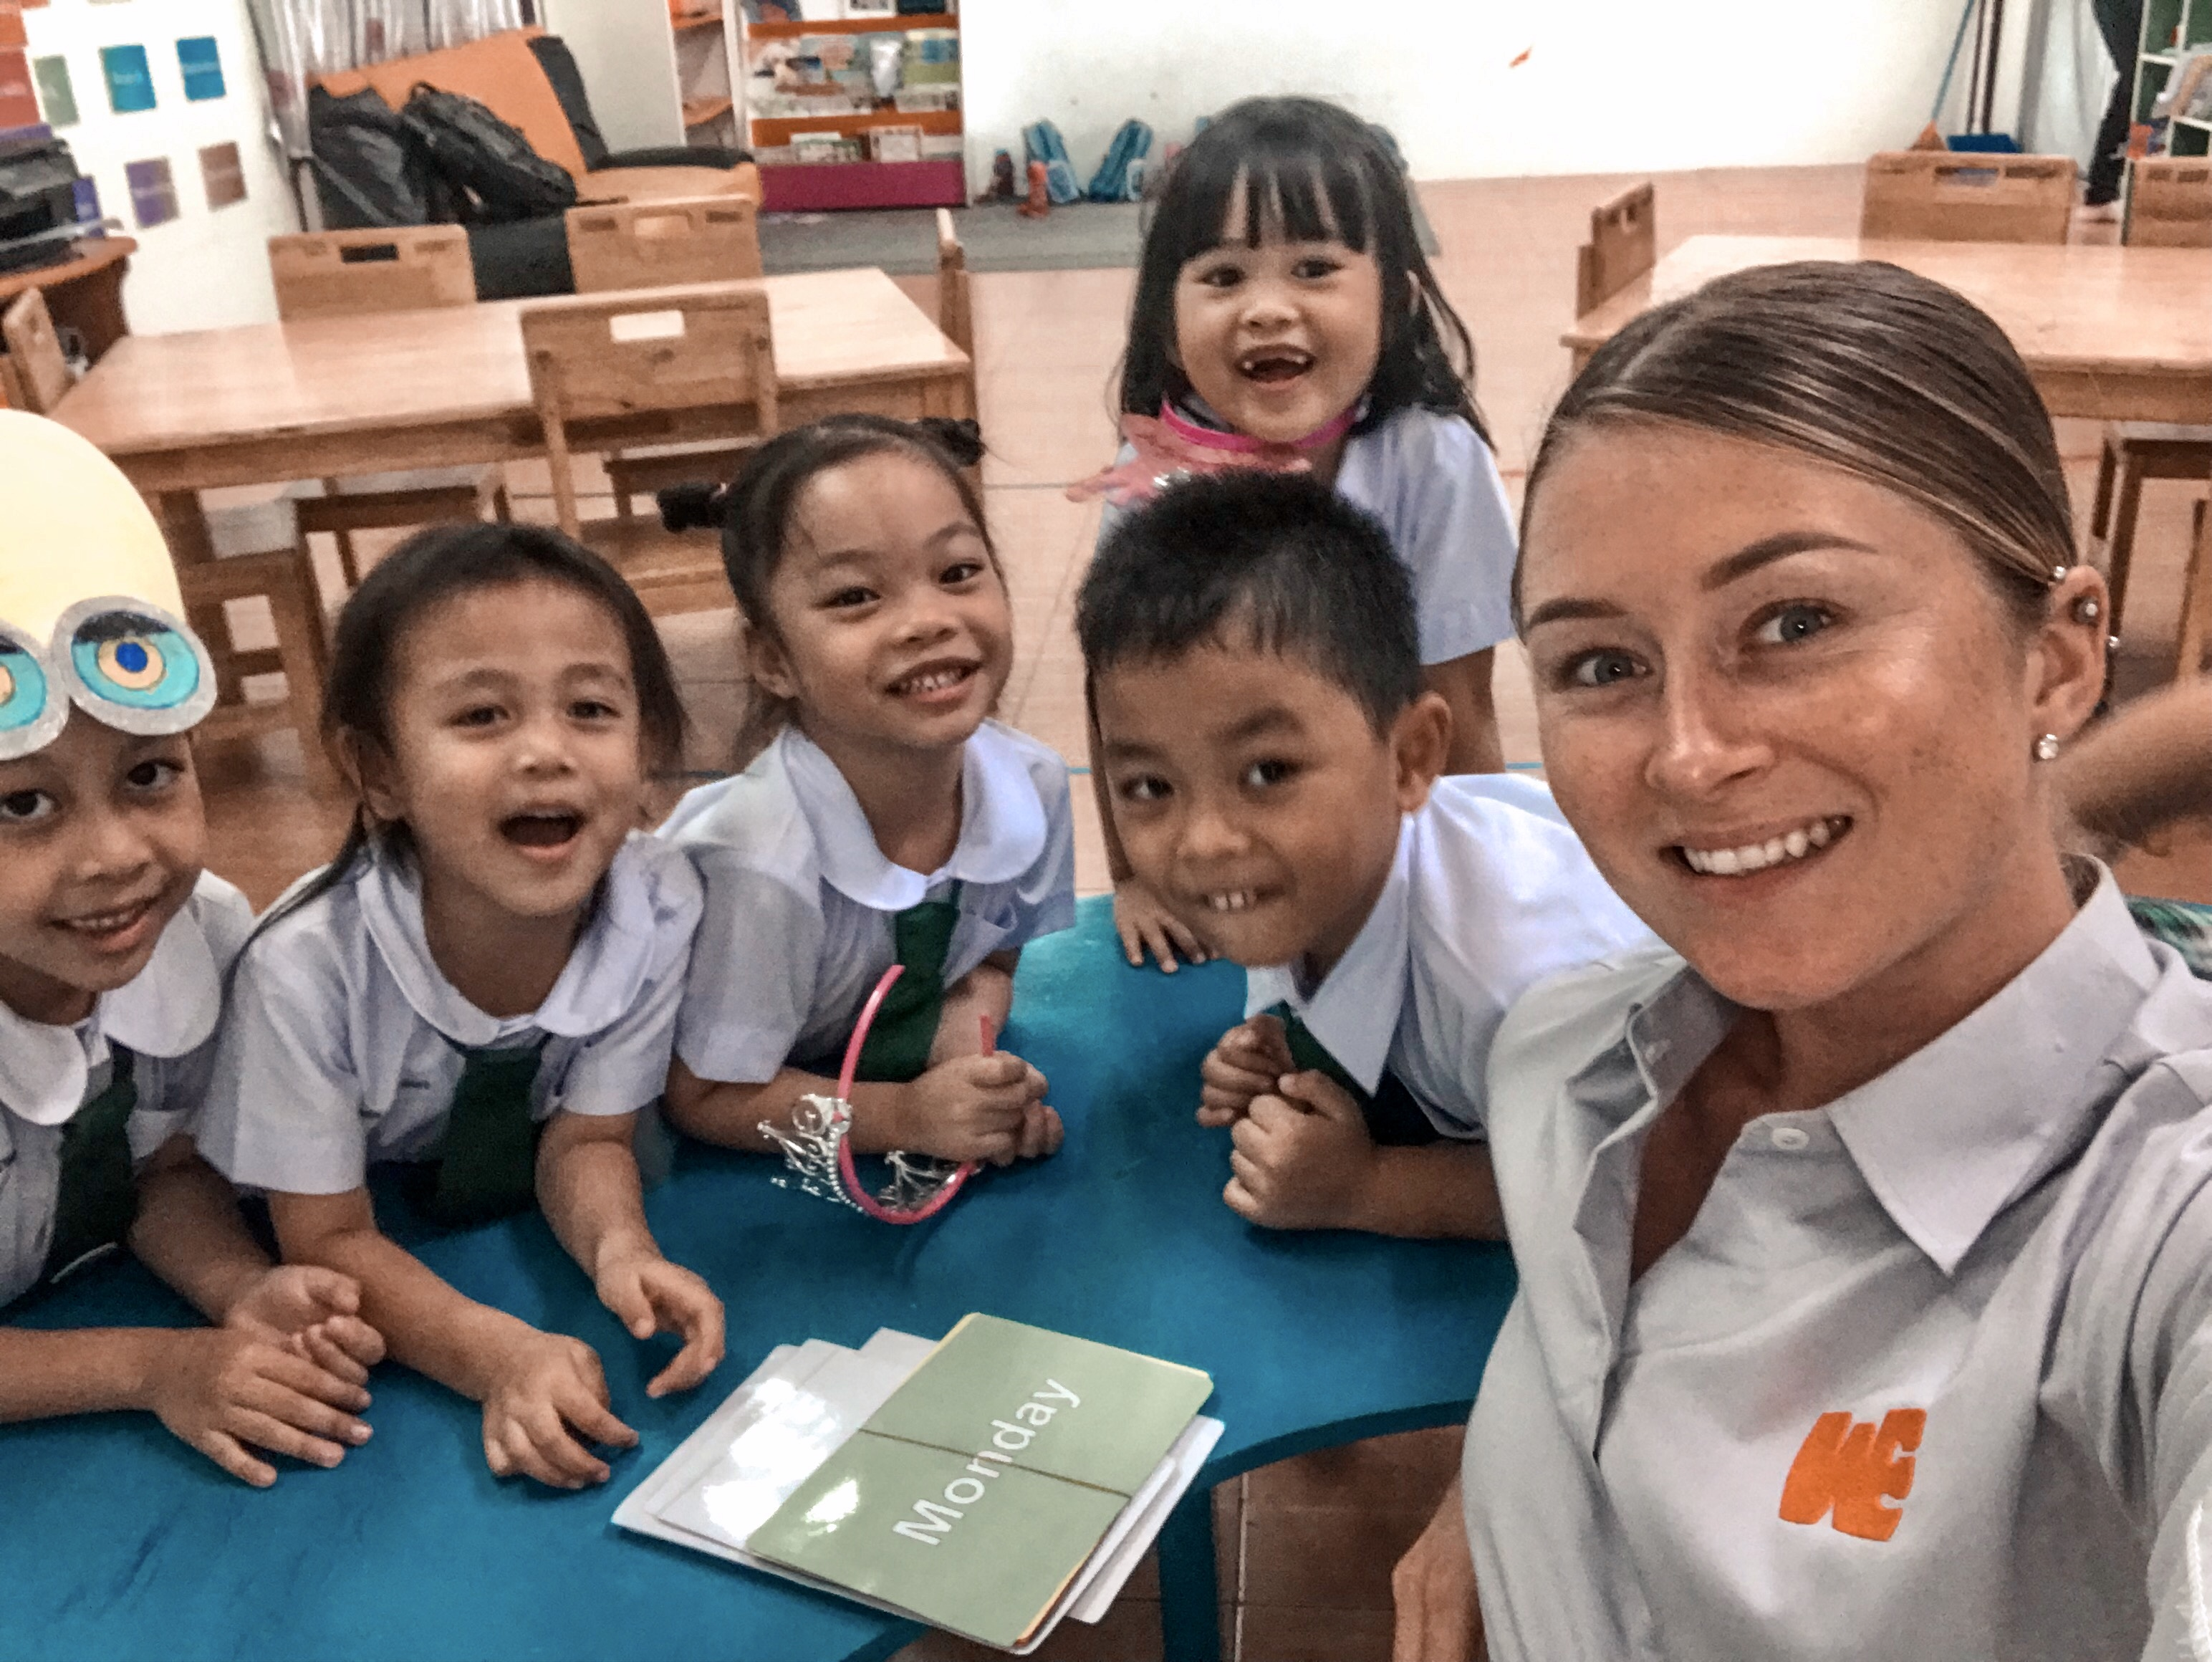 TEFL, TESOL & CELTA: What Class Do I Need for Teaching English Abroad?